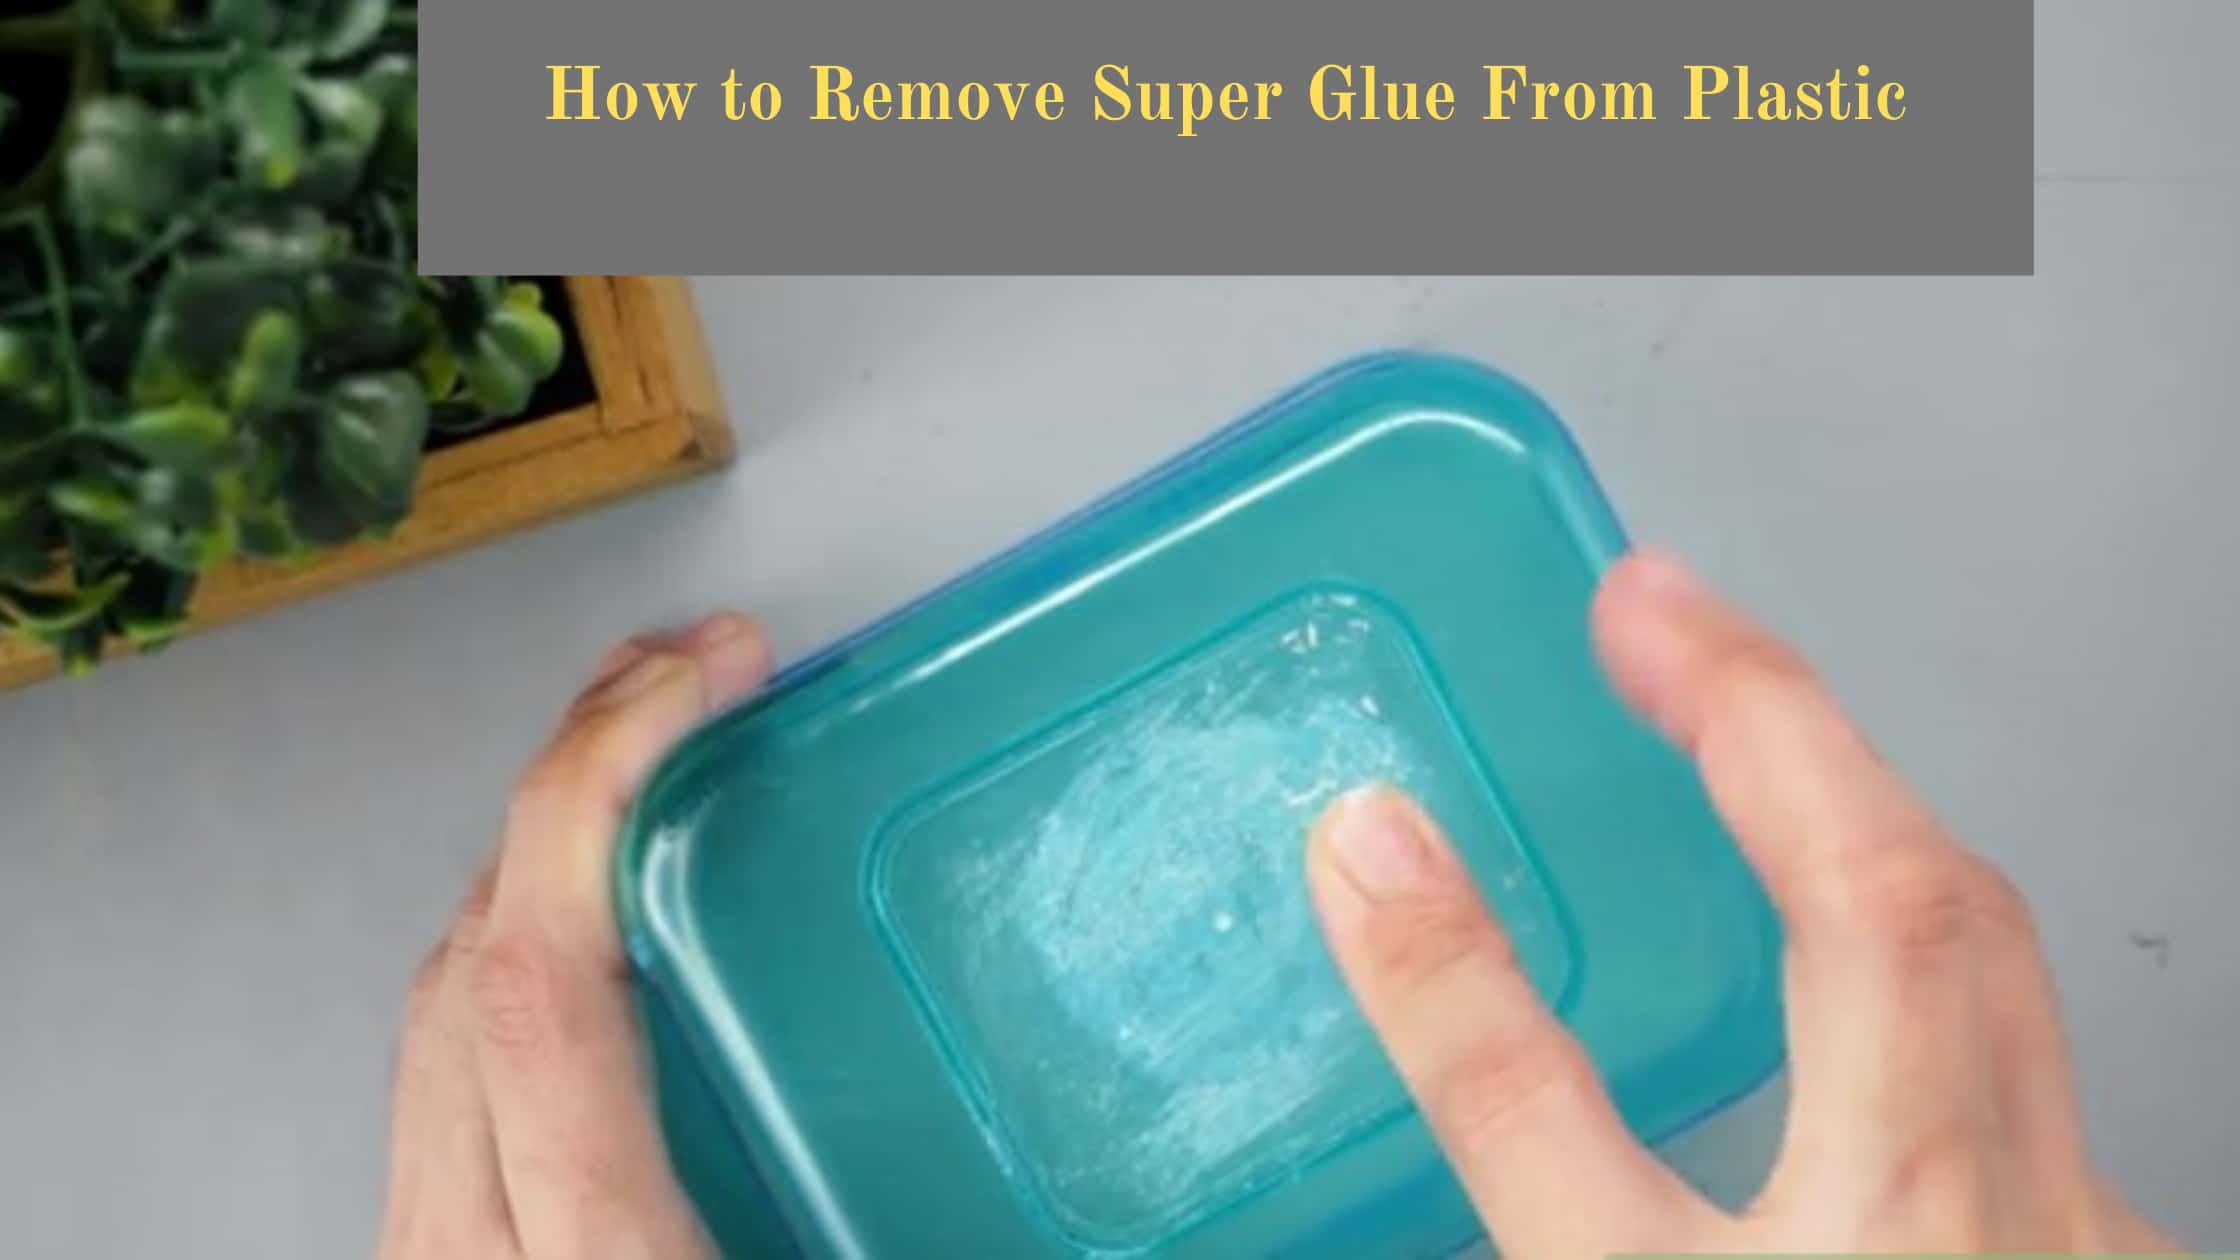 How to Remove Super Glue From Plastic